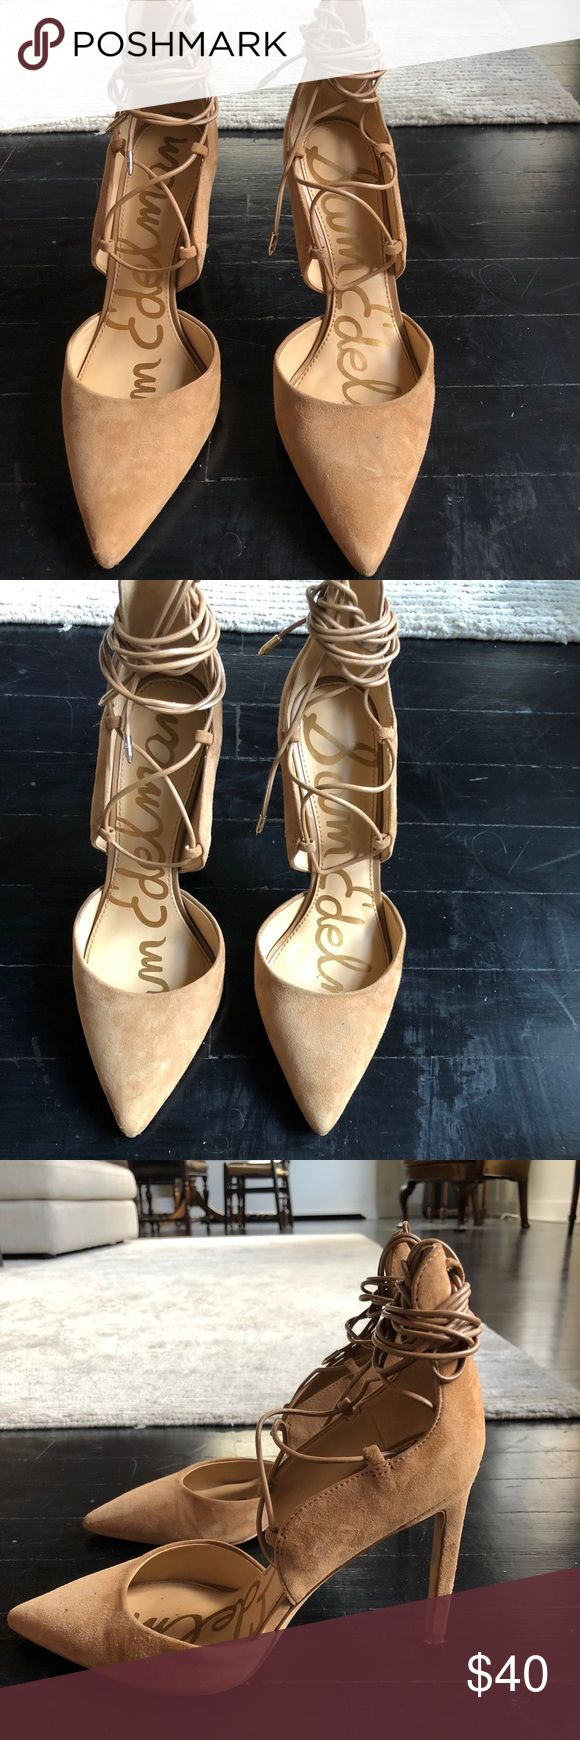 Sam Edelman lace up suede camel heels Only worn once! All suede tan lace up heel, can be wrapped around foot or ankle in various ways. Sam Edelman Shoes Heels